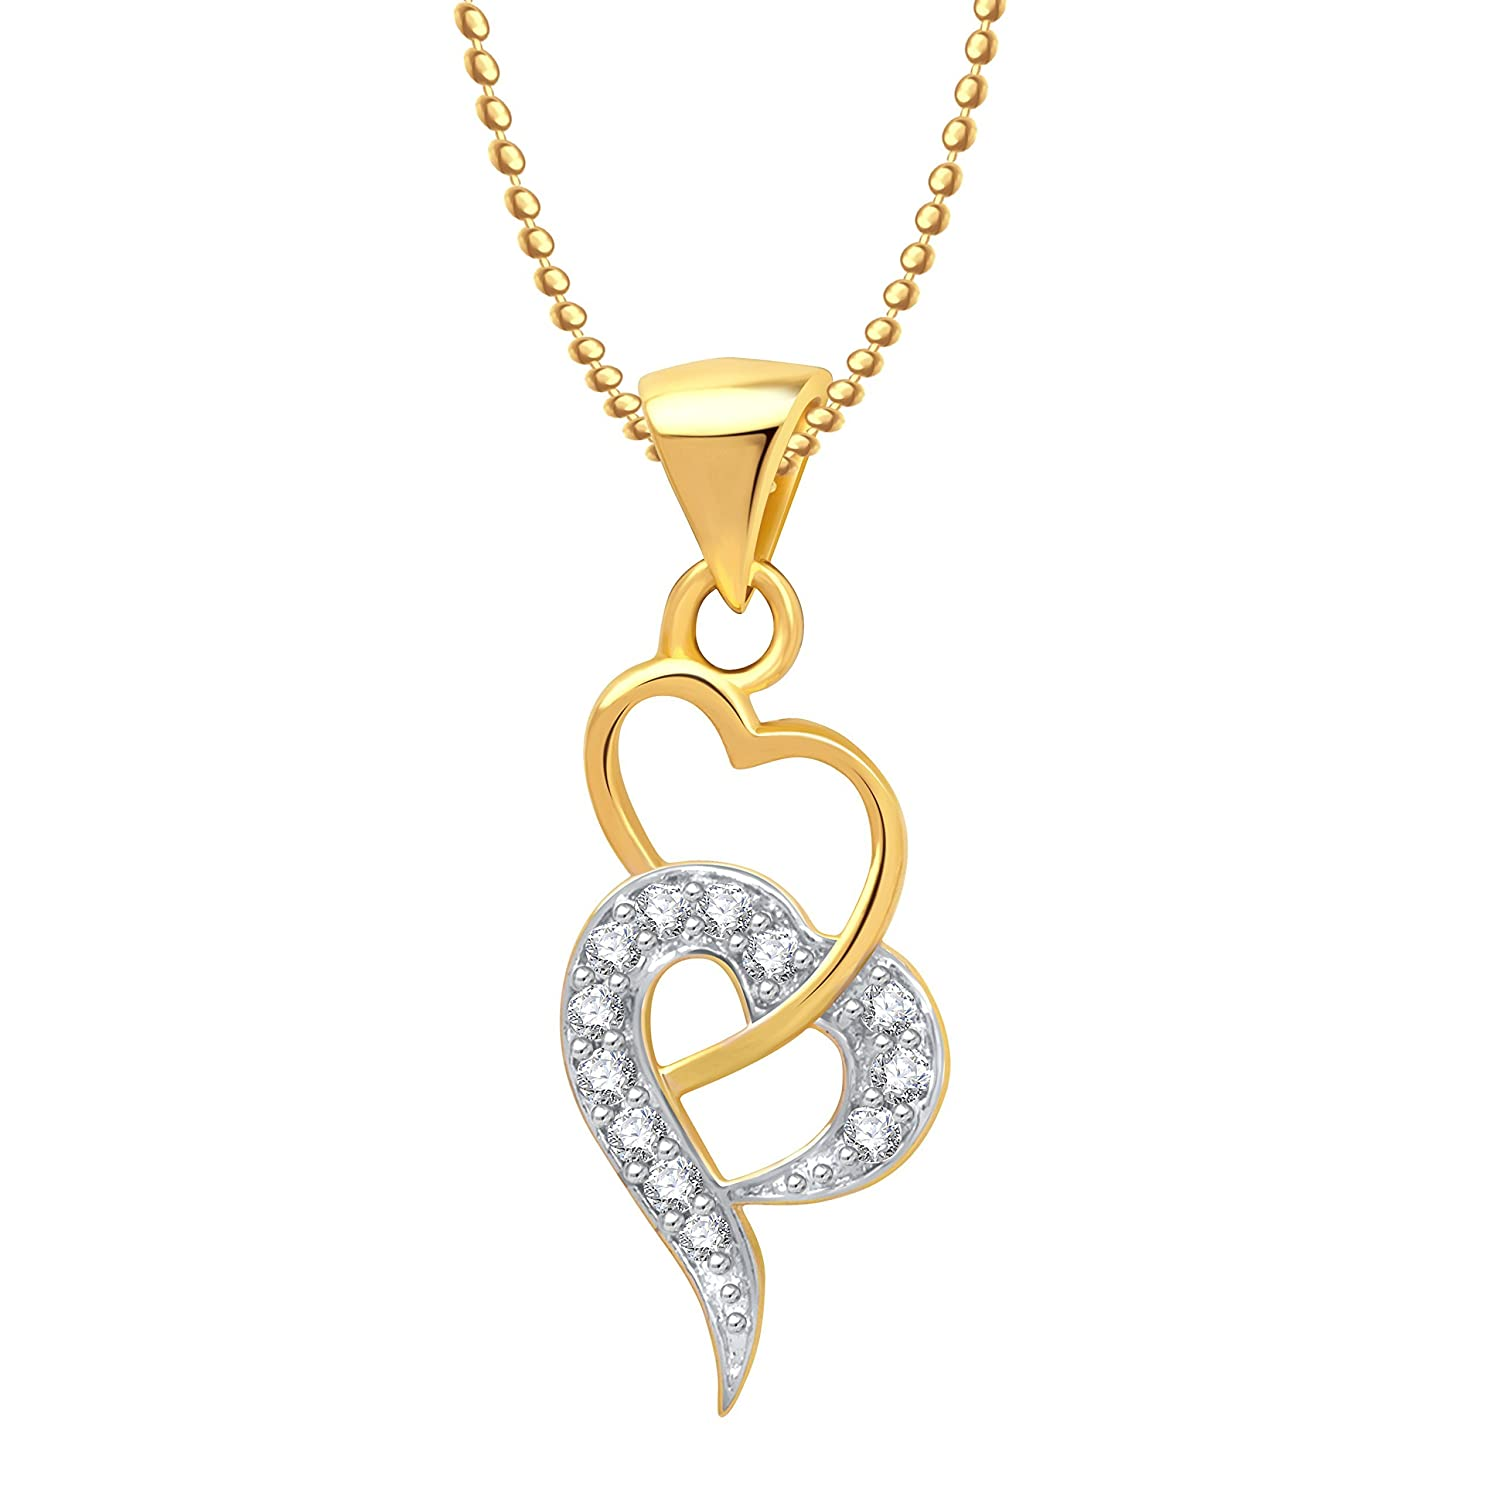 jewellery at buy d amazon letter prices in gold for unisex store india american lockets low online diamond meenaz plated dp pendant